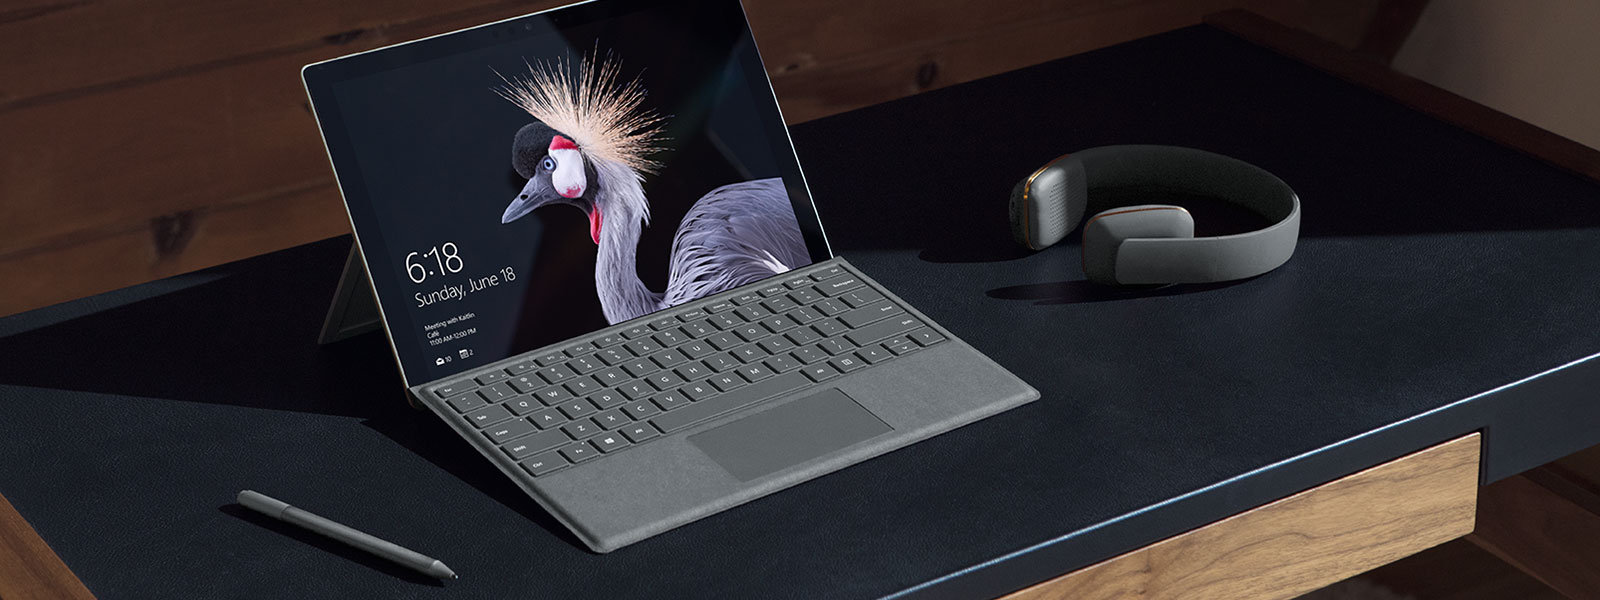 Image of Surface Pro Signature Type Cover placed on top of a desk.